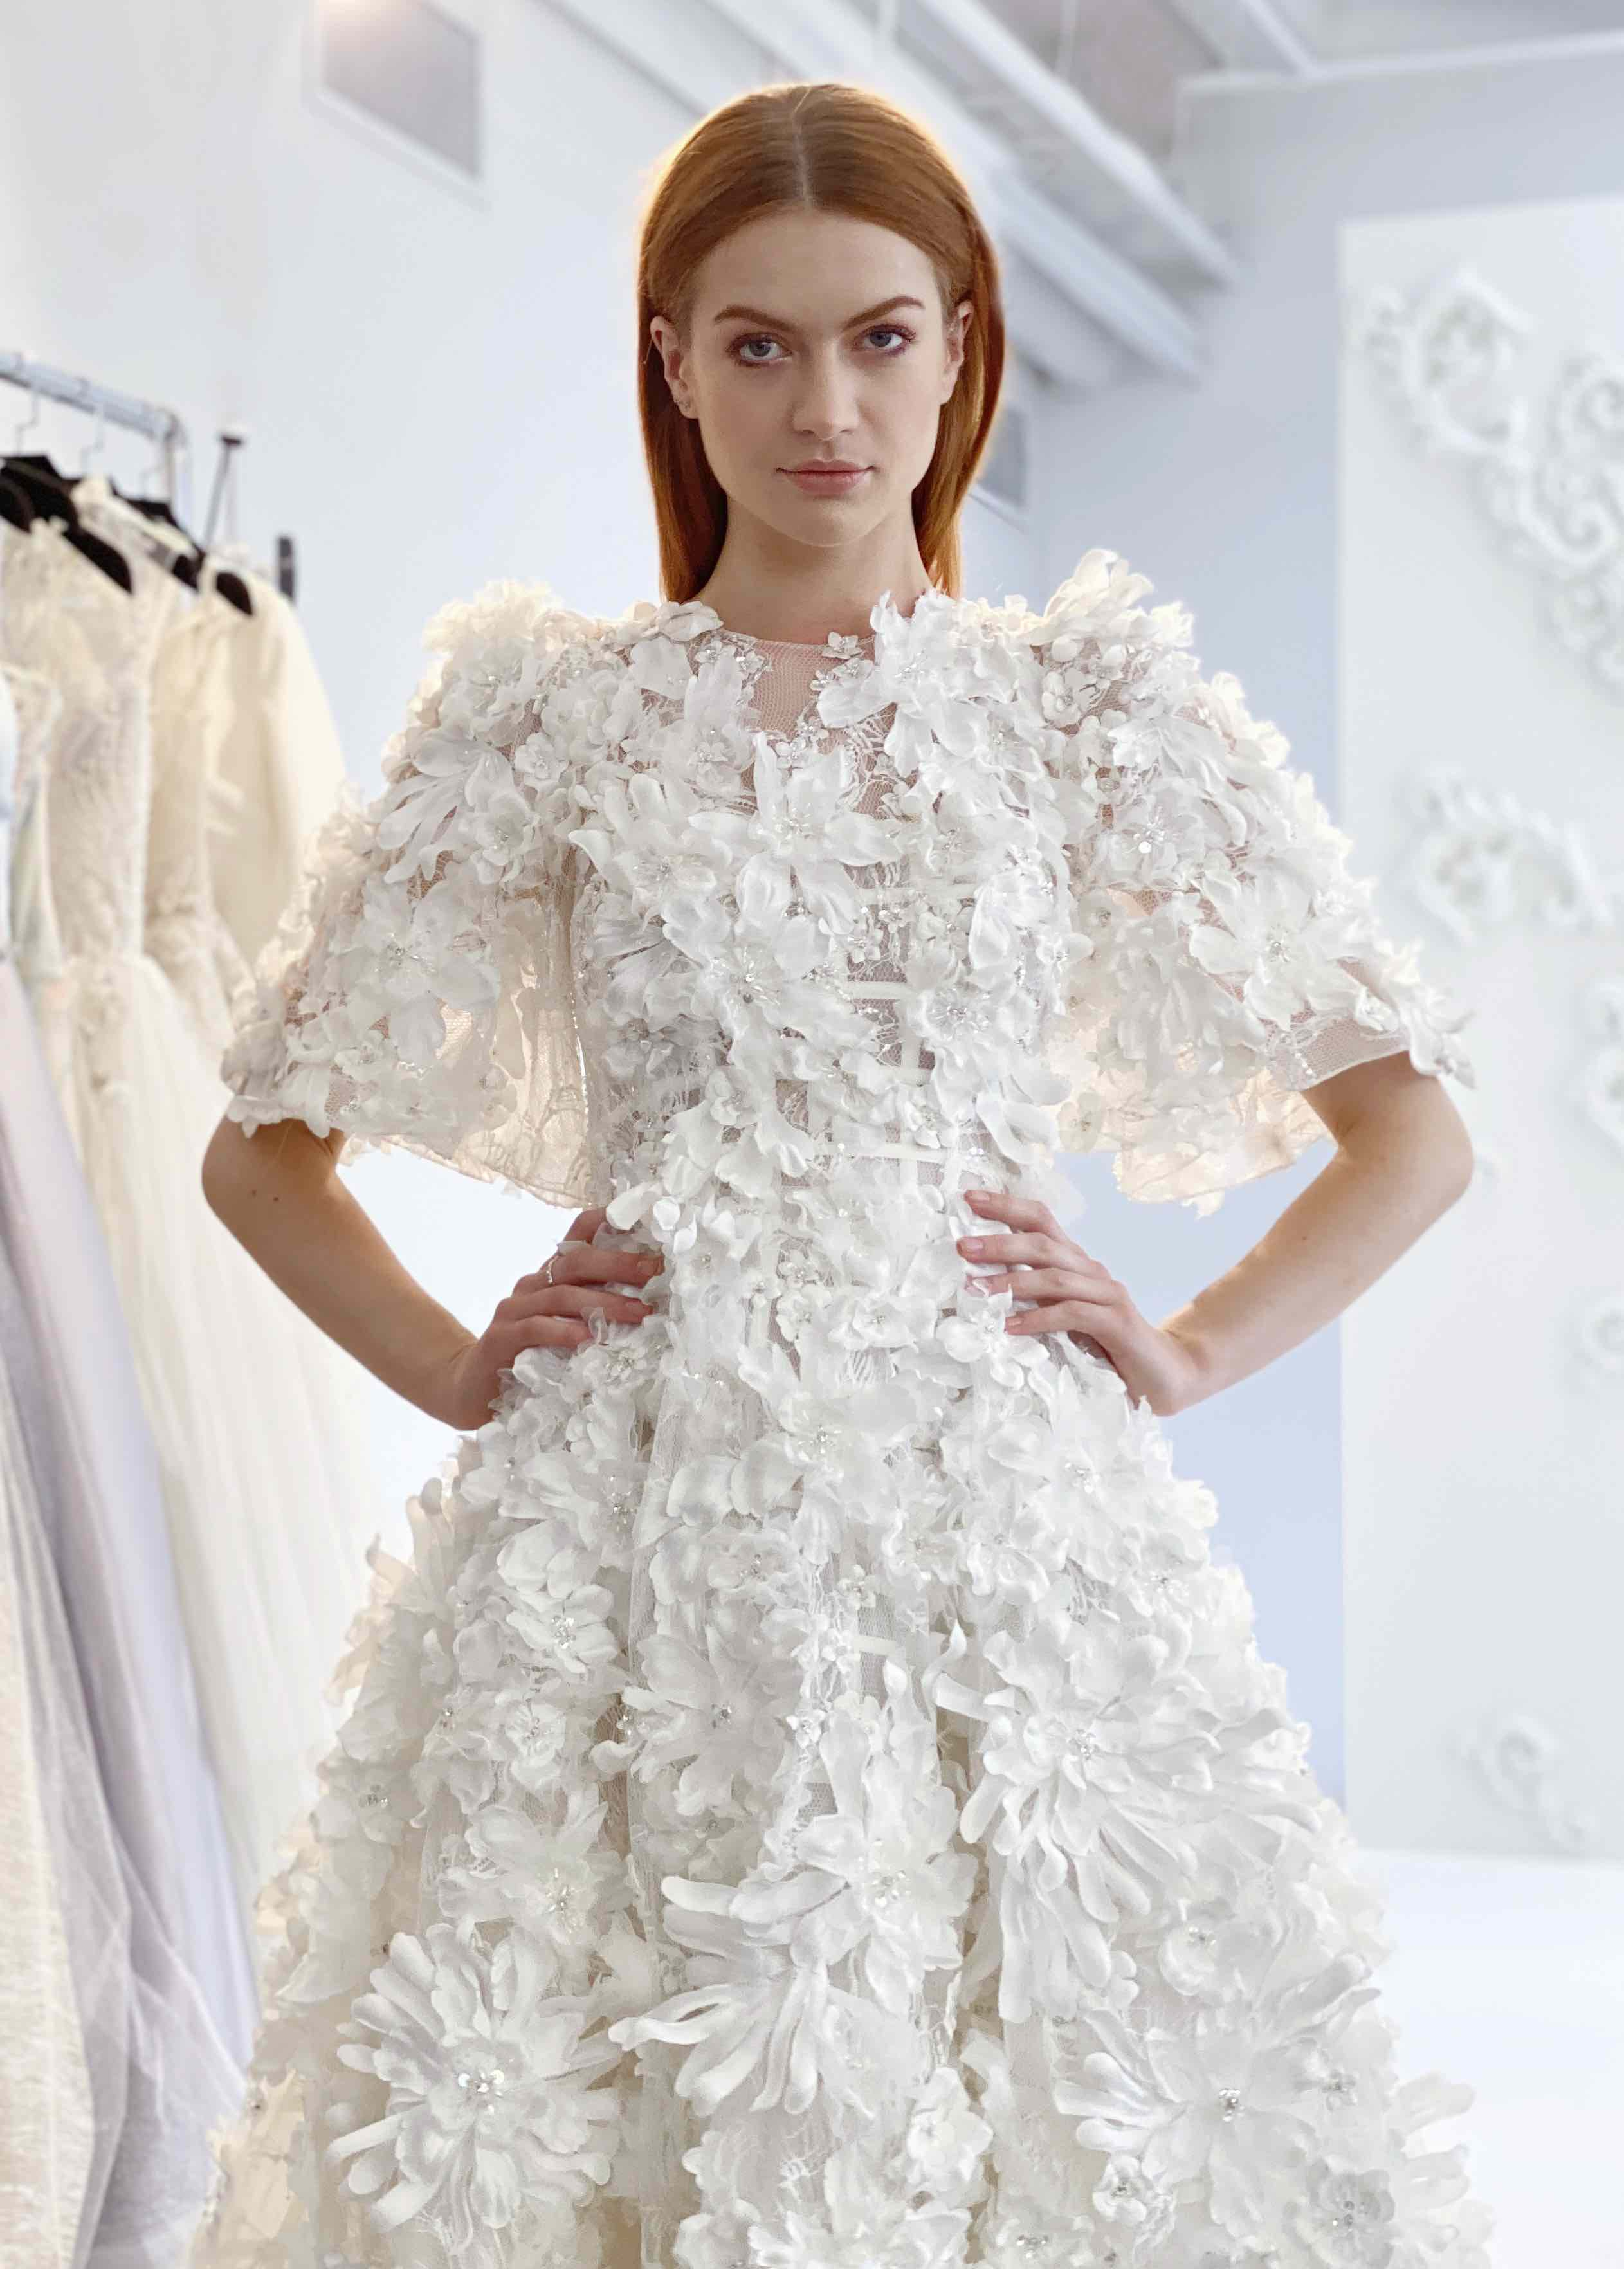 Wedding Report: The Top Bridal Trends You Will See In 2020